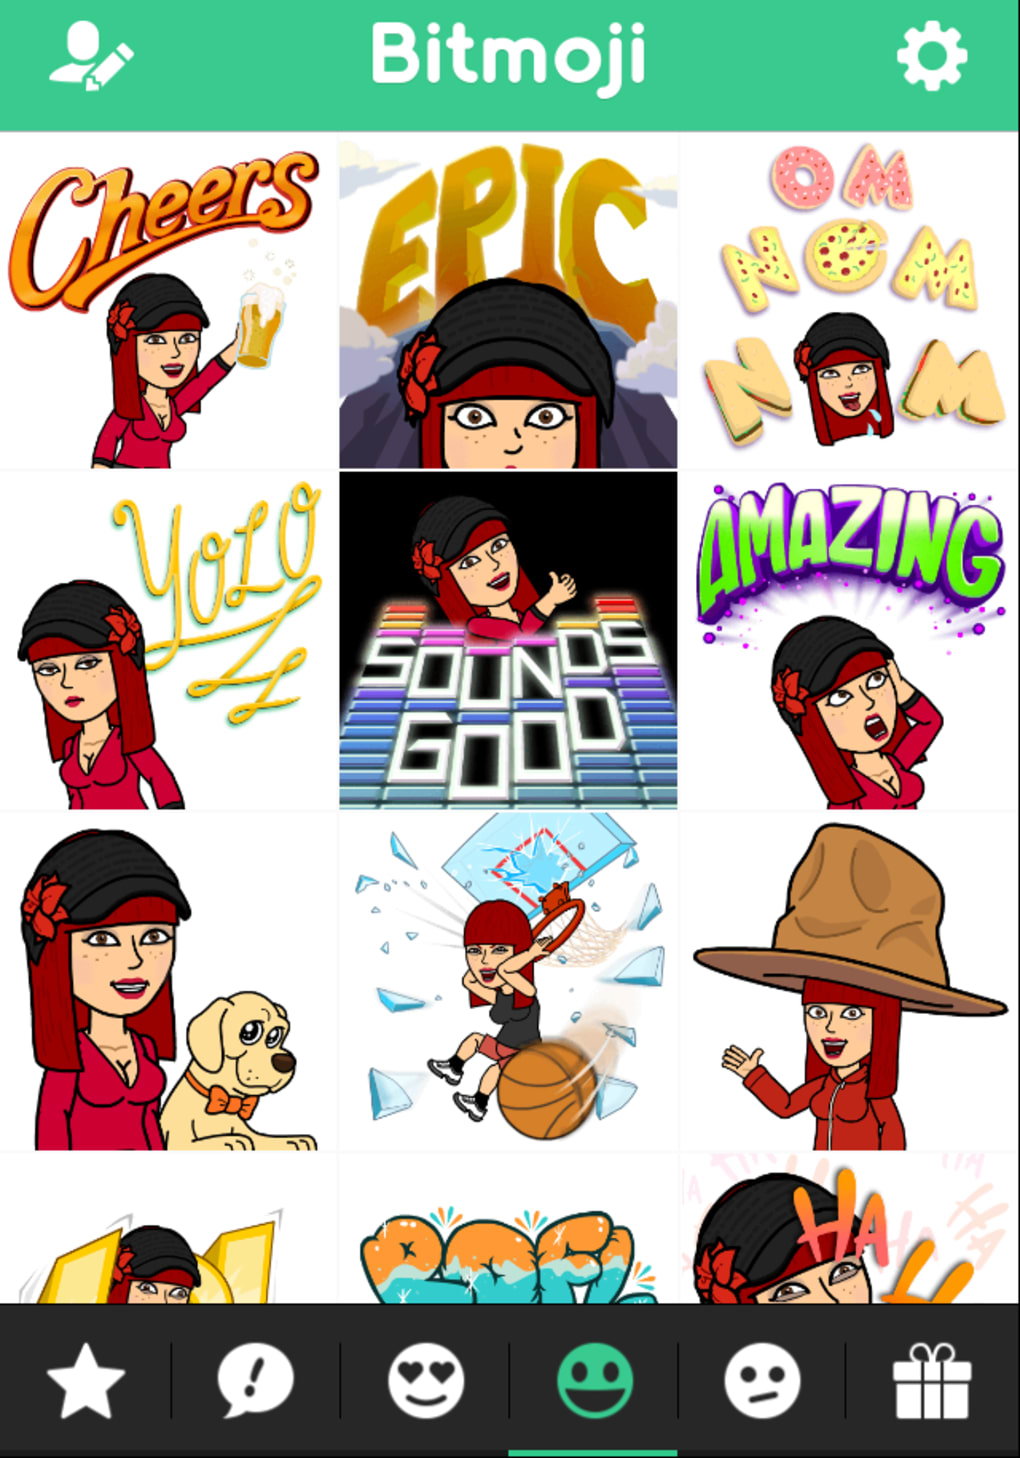 Bitmoji - Emoji by Bitstrips for Android - Download